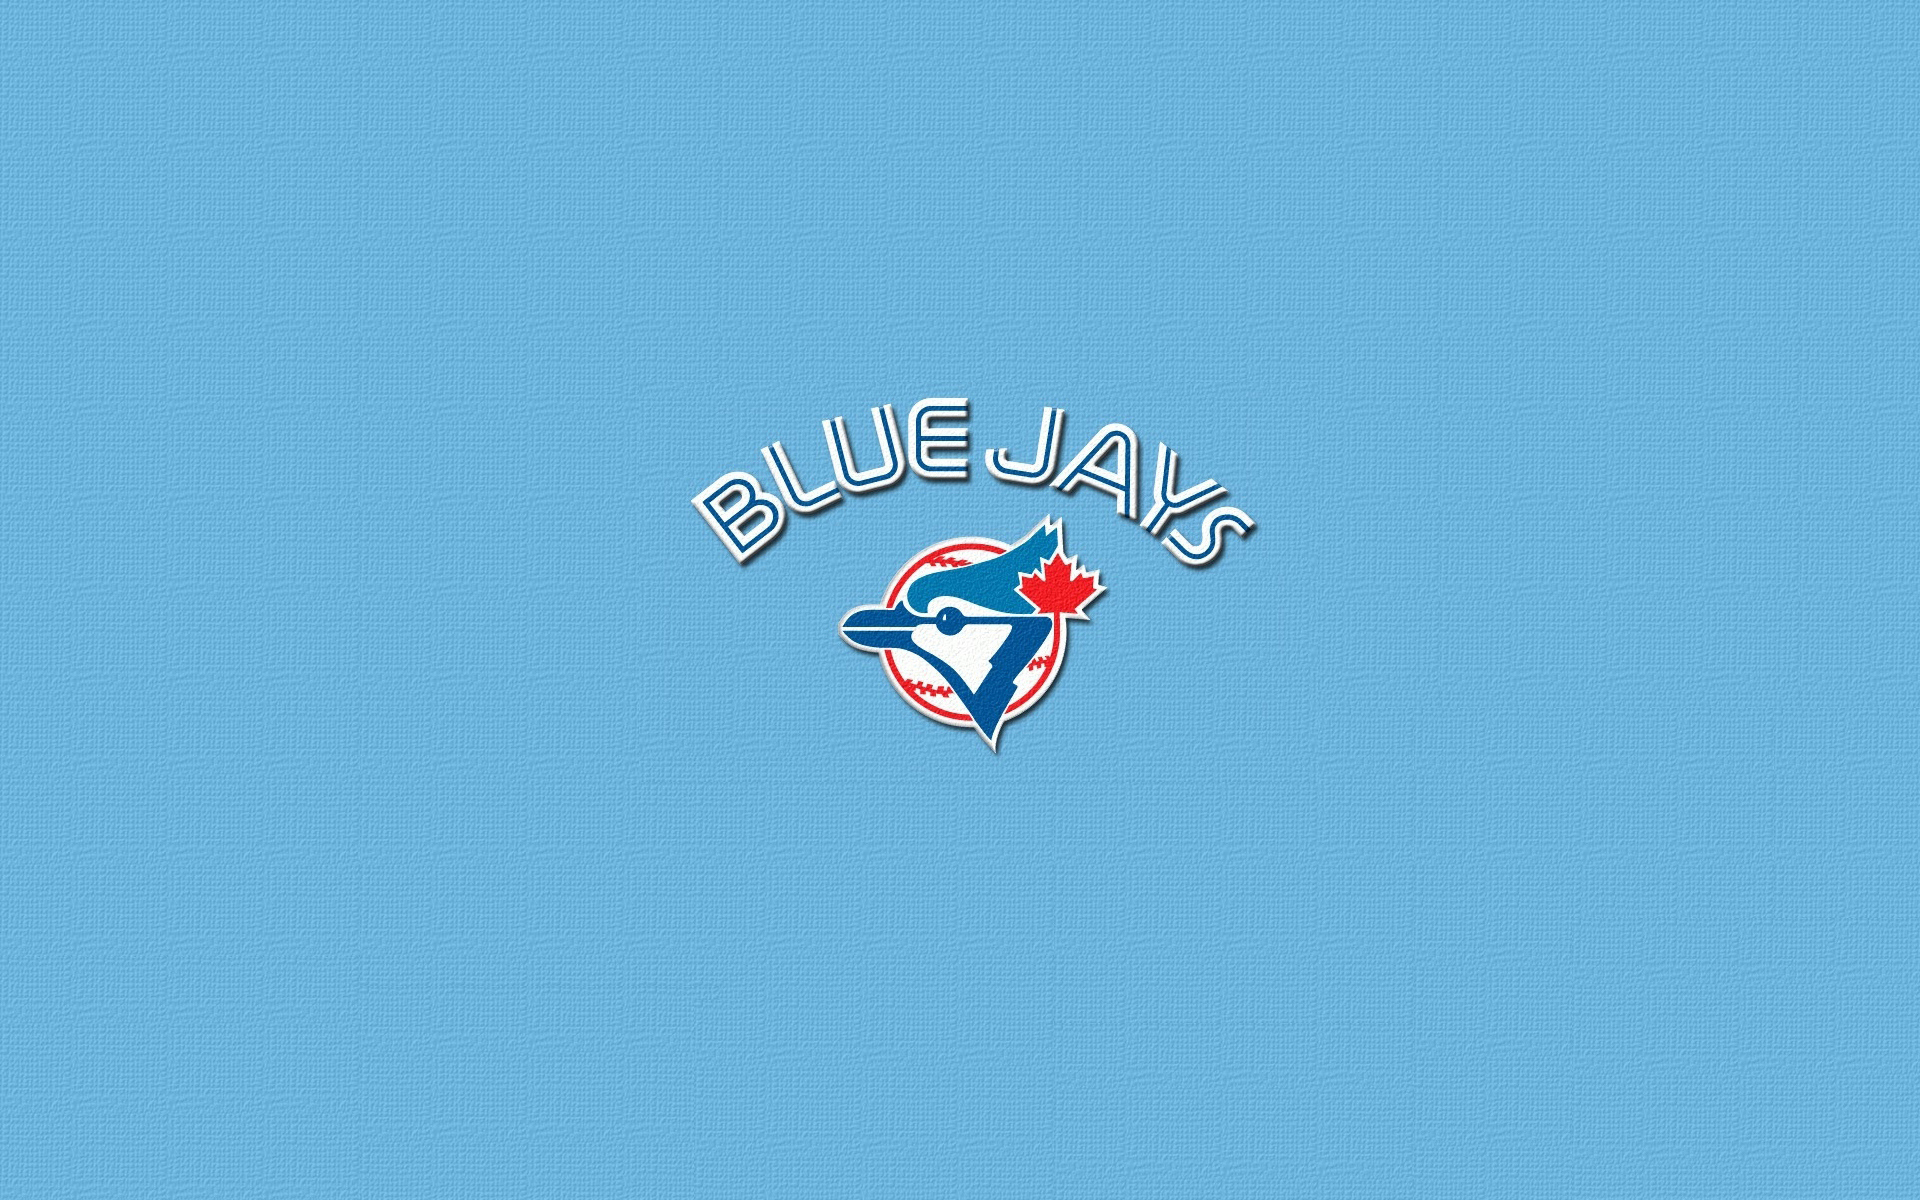 Toronto Blue Jays Hd Wallpaper 19201200 23360 HD Wallpaper Res 1920x1200